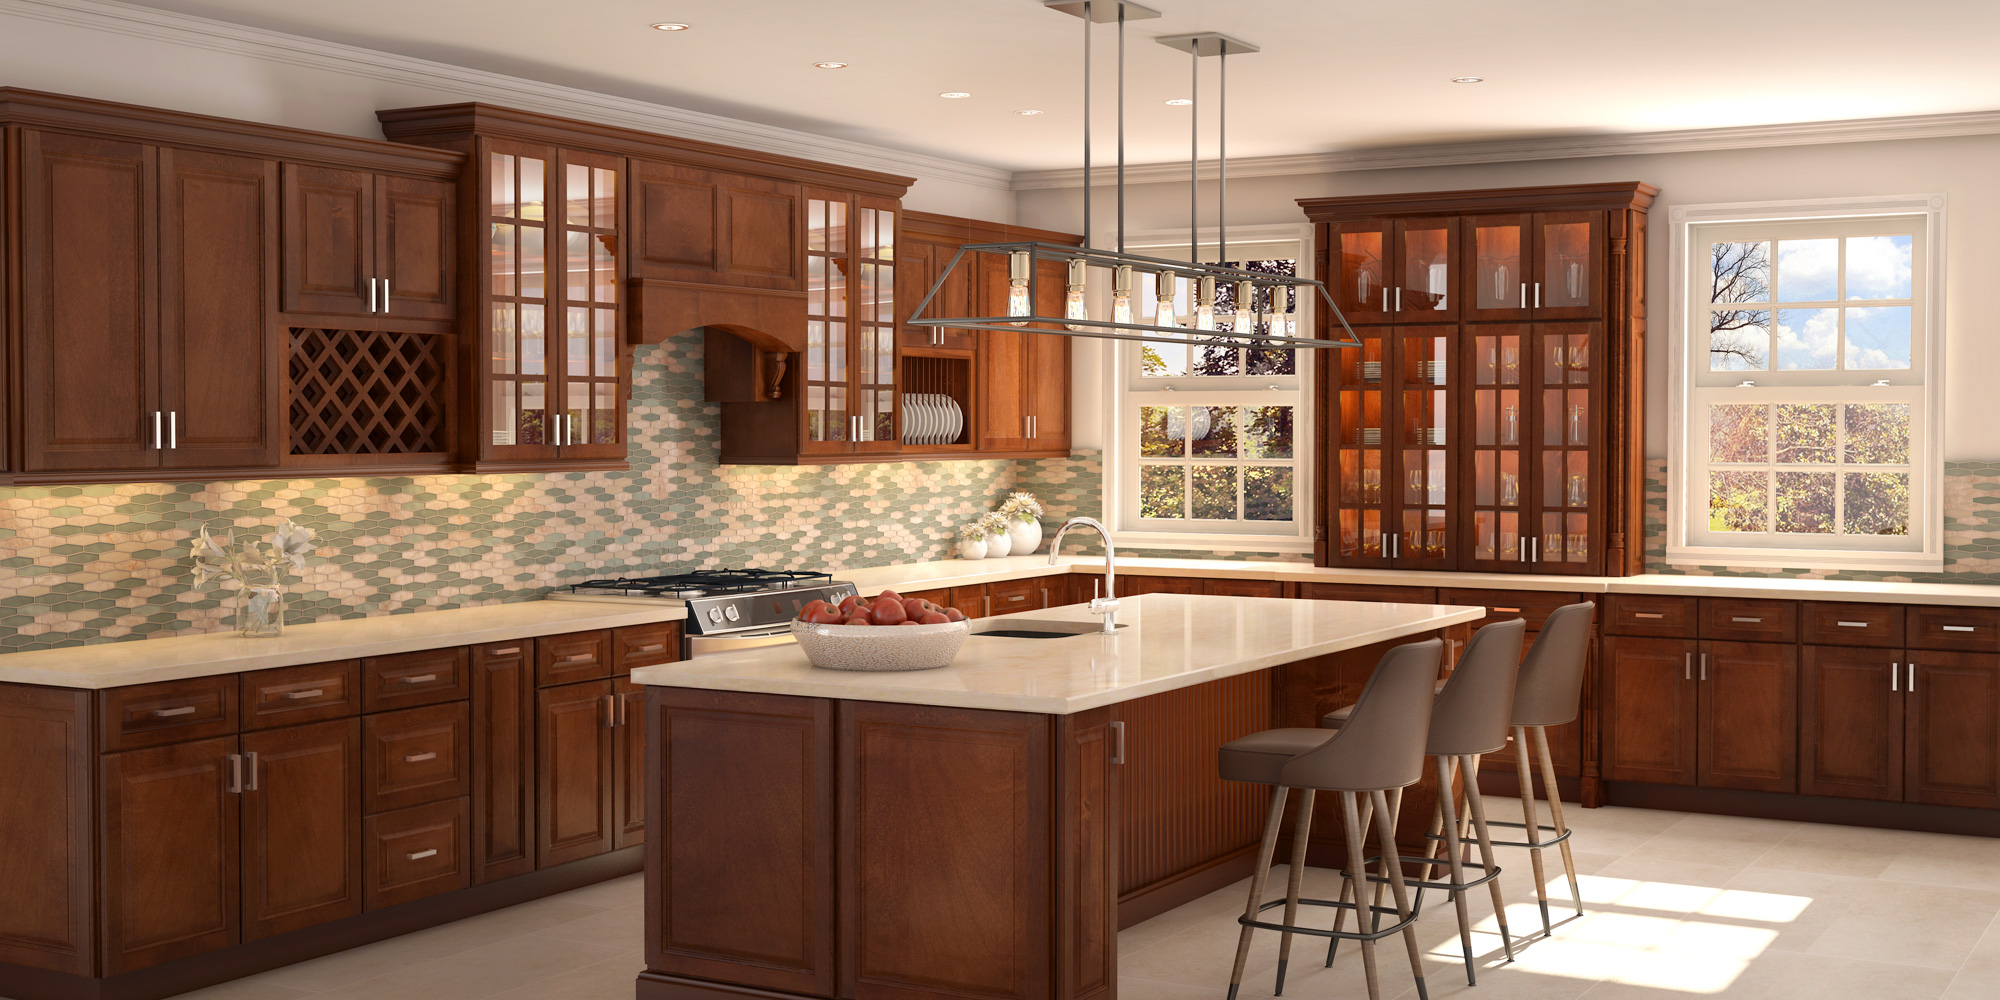 European Kitchen Cabinets Brooklyn Ny Completed Kitchen Remodeling Projects In Brooklyn Dna